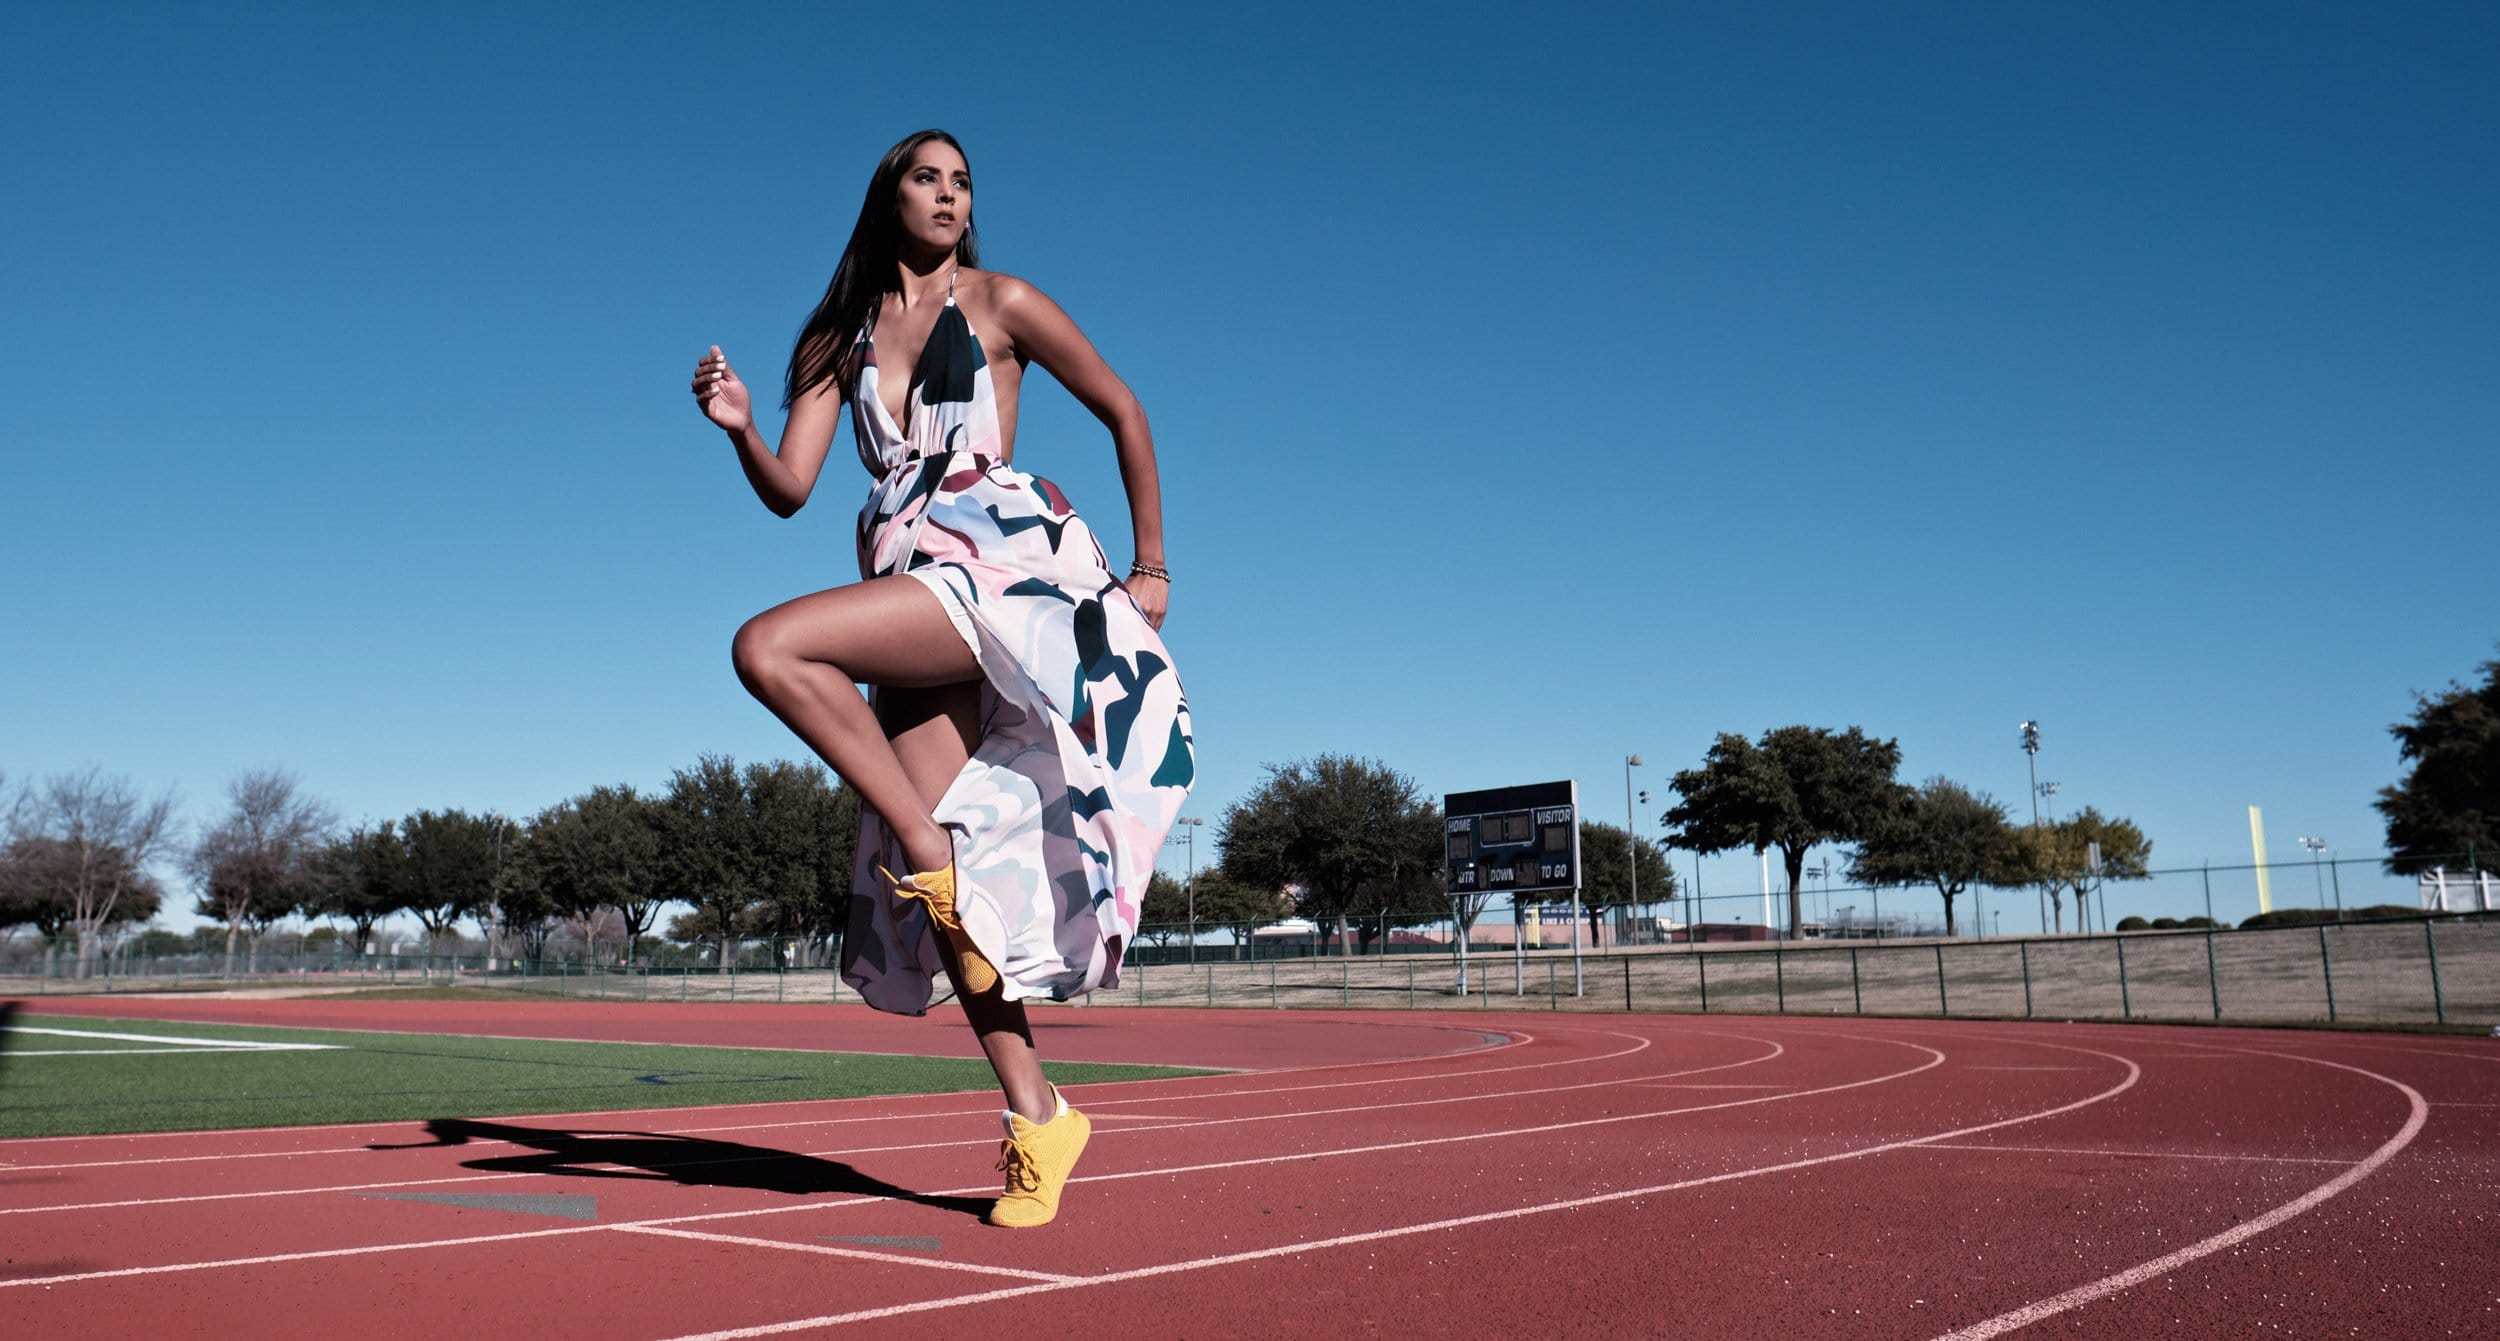 Dallas sports portraits of girls high School track and field at Allen